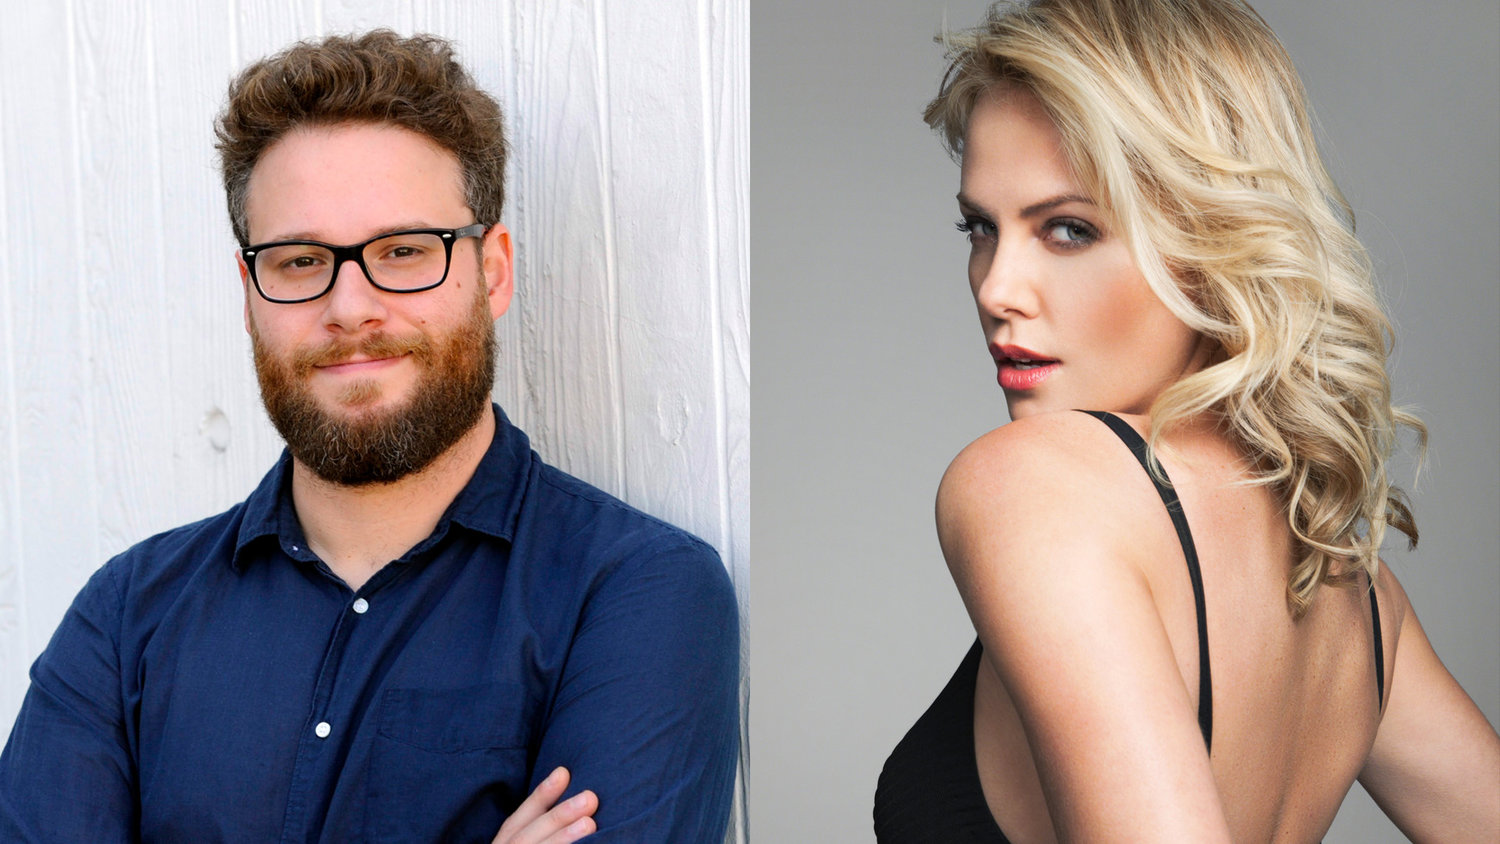 Unlikely Co-Stars Seth Rogen and Charlize Theron to Headline a New Comedy Called FLARSKY